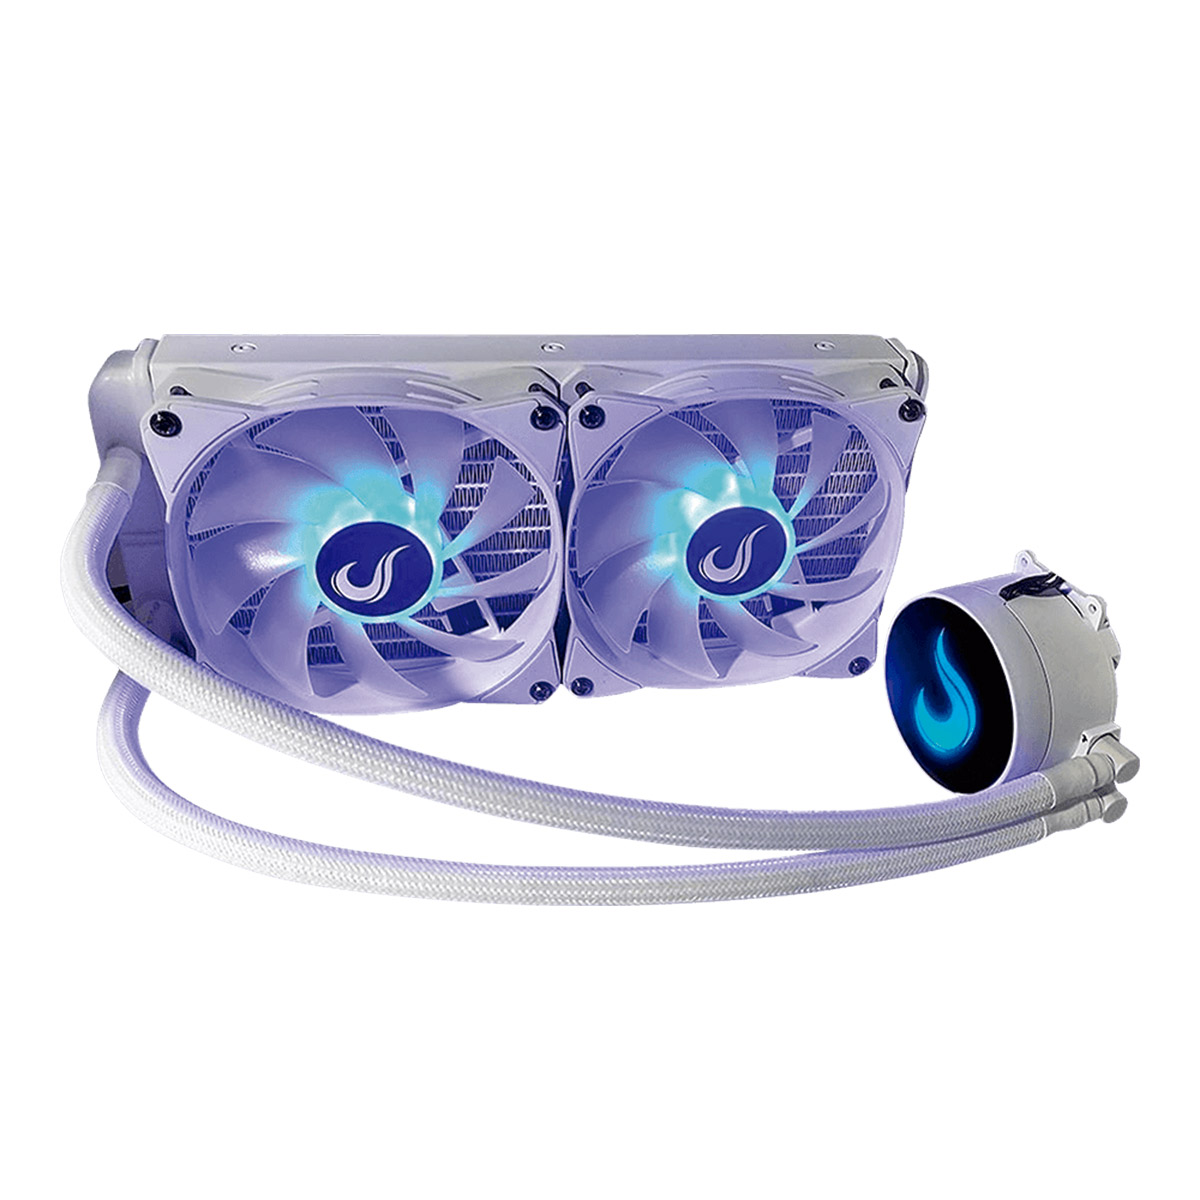 WATER COLER FROST 240MM RM-WCZ-02-RGB